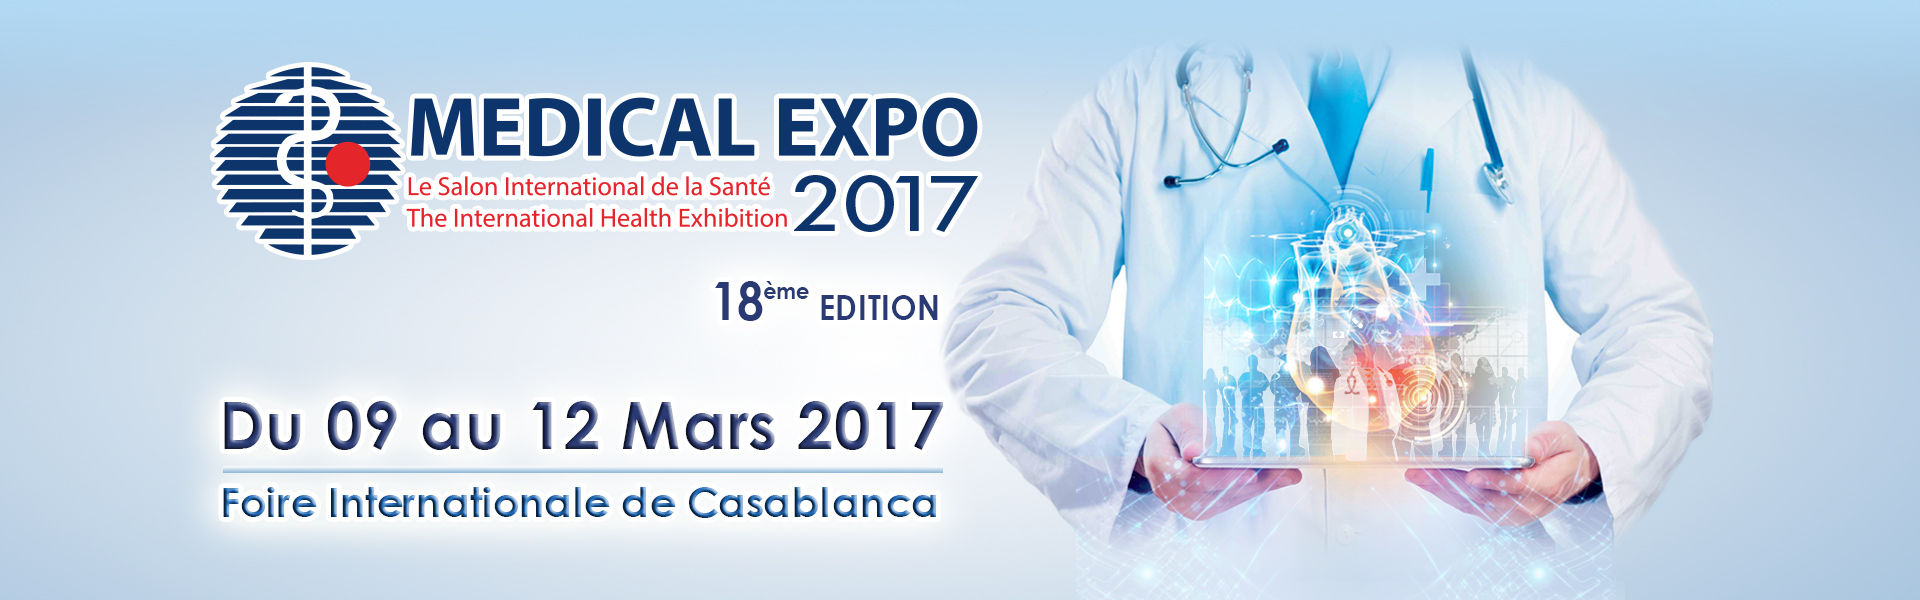 Medical Expo 2017